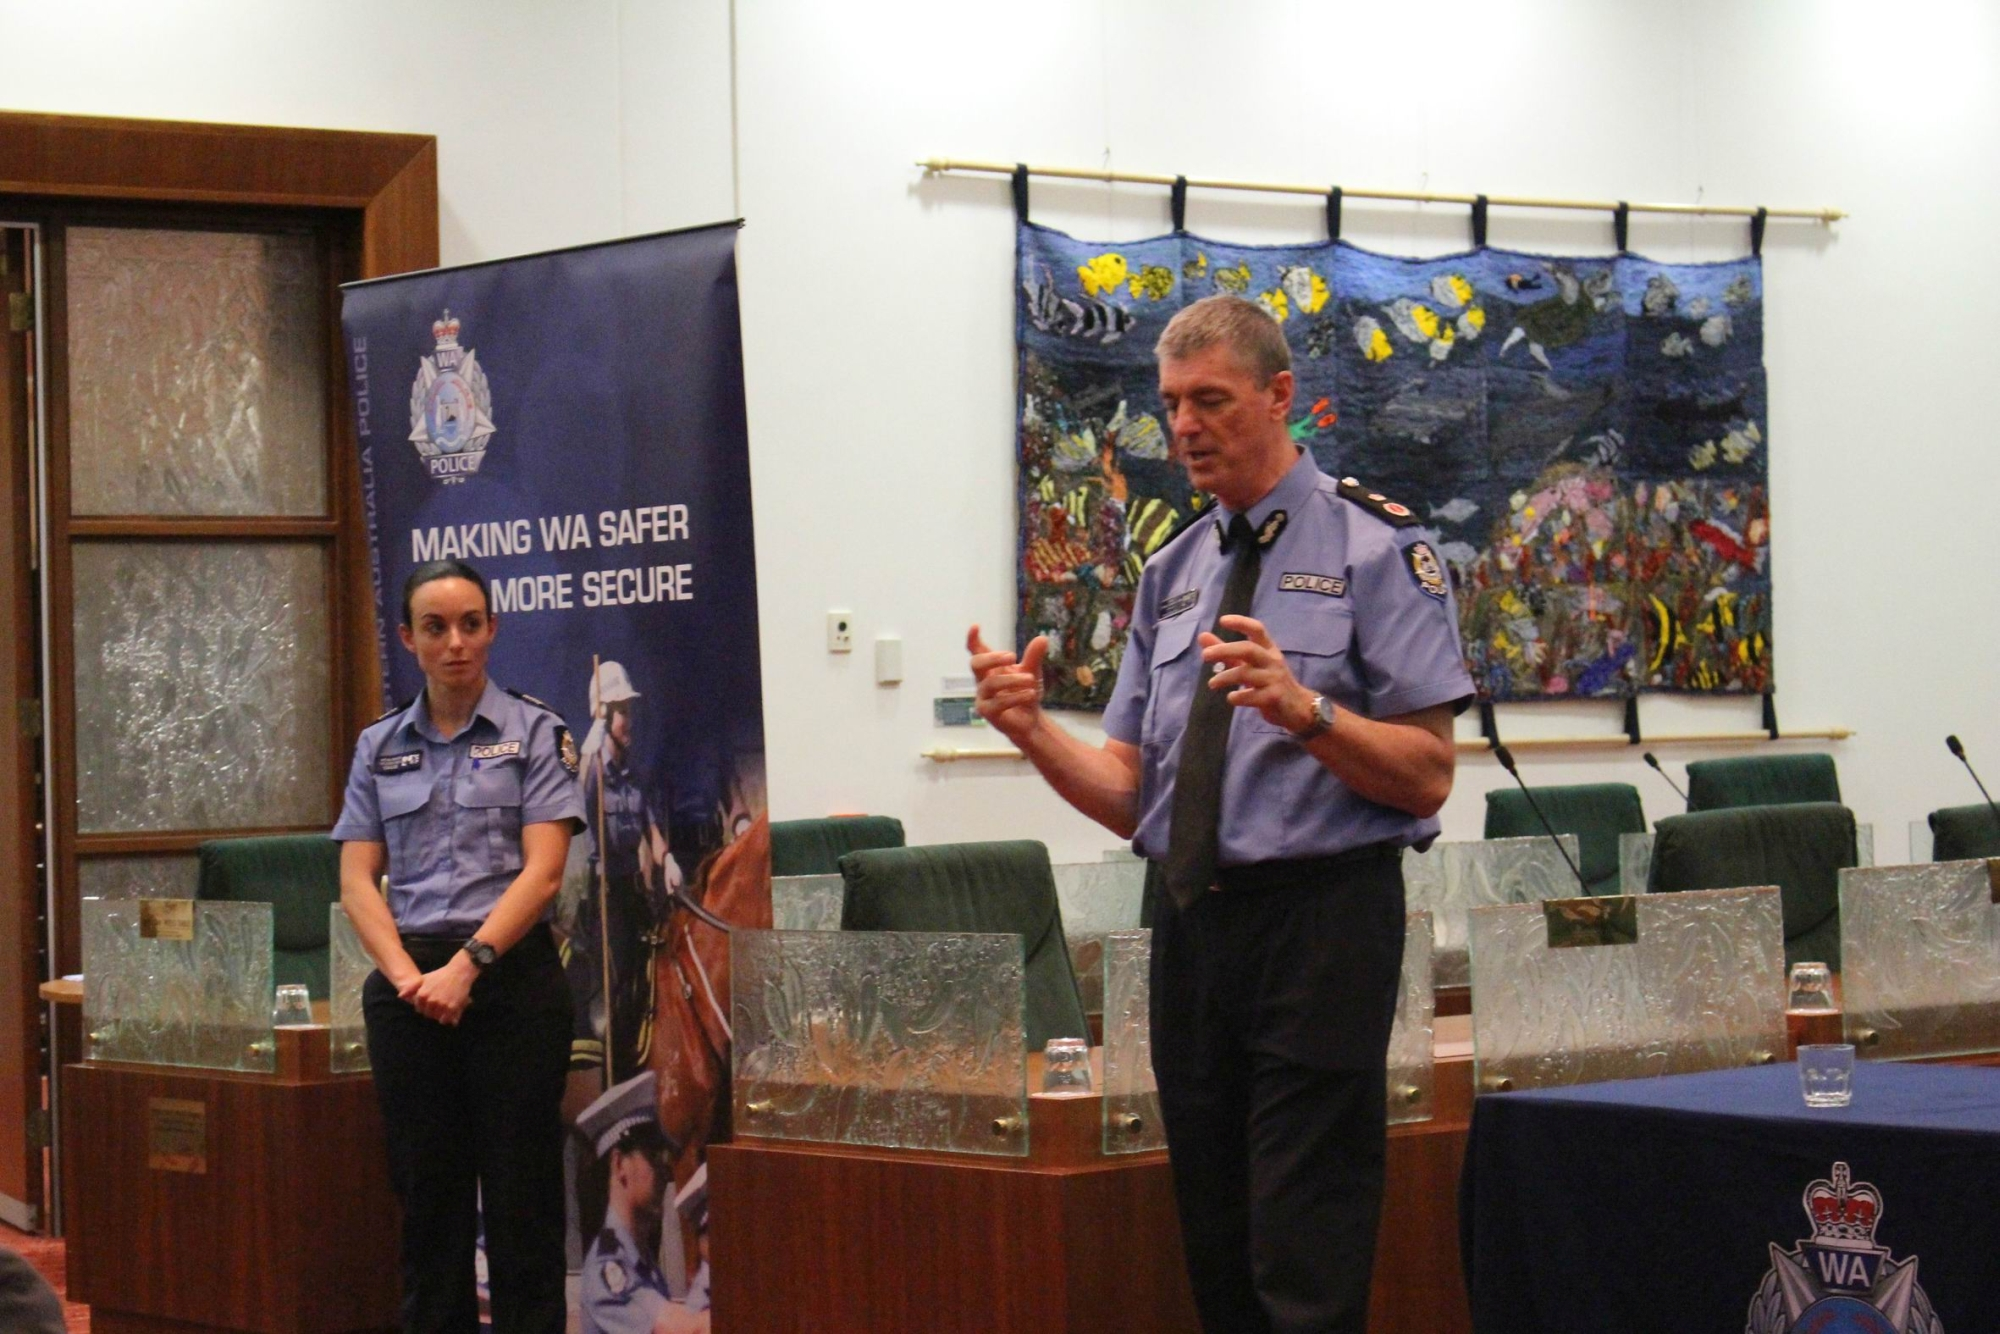 Karl O'Callaghan speaking at the Wanneroo Council Chambers last week.